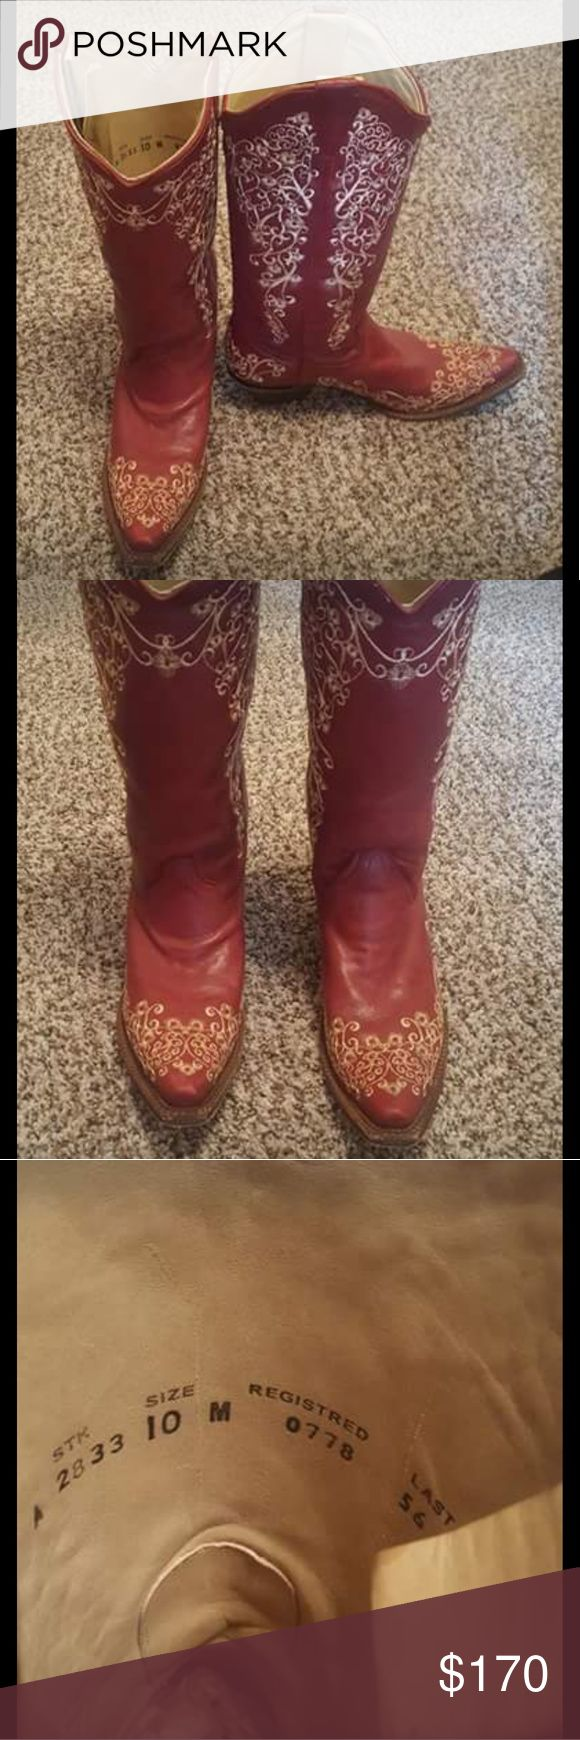 Corral West Red Pointed Toe Boots Corral west embroidered red pointed toe boots, size 10. Only worn once, in immaculate condition, have been kept in the box. Brand new these are still for sale at Boot Barn for $225. Make a good offer and they're yours, free shipping. Corral West Shoes Heeled Boots